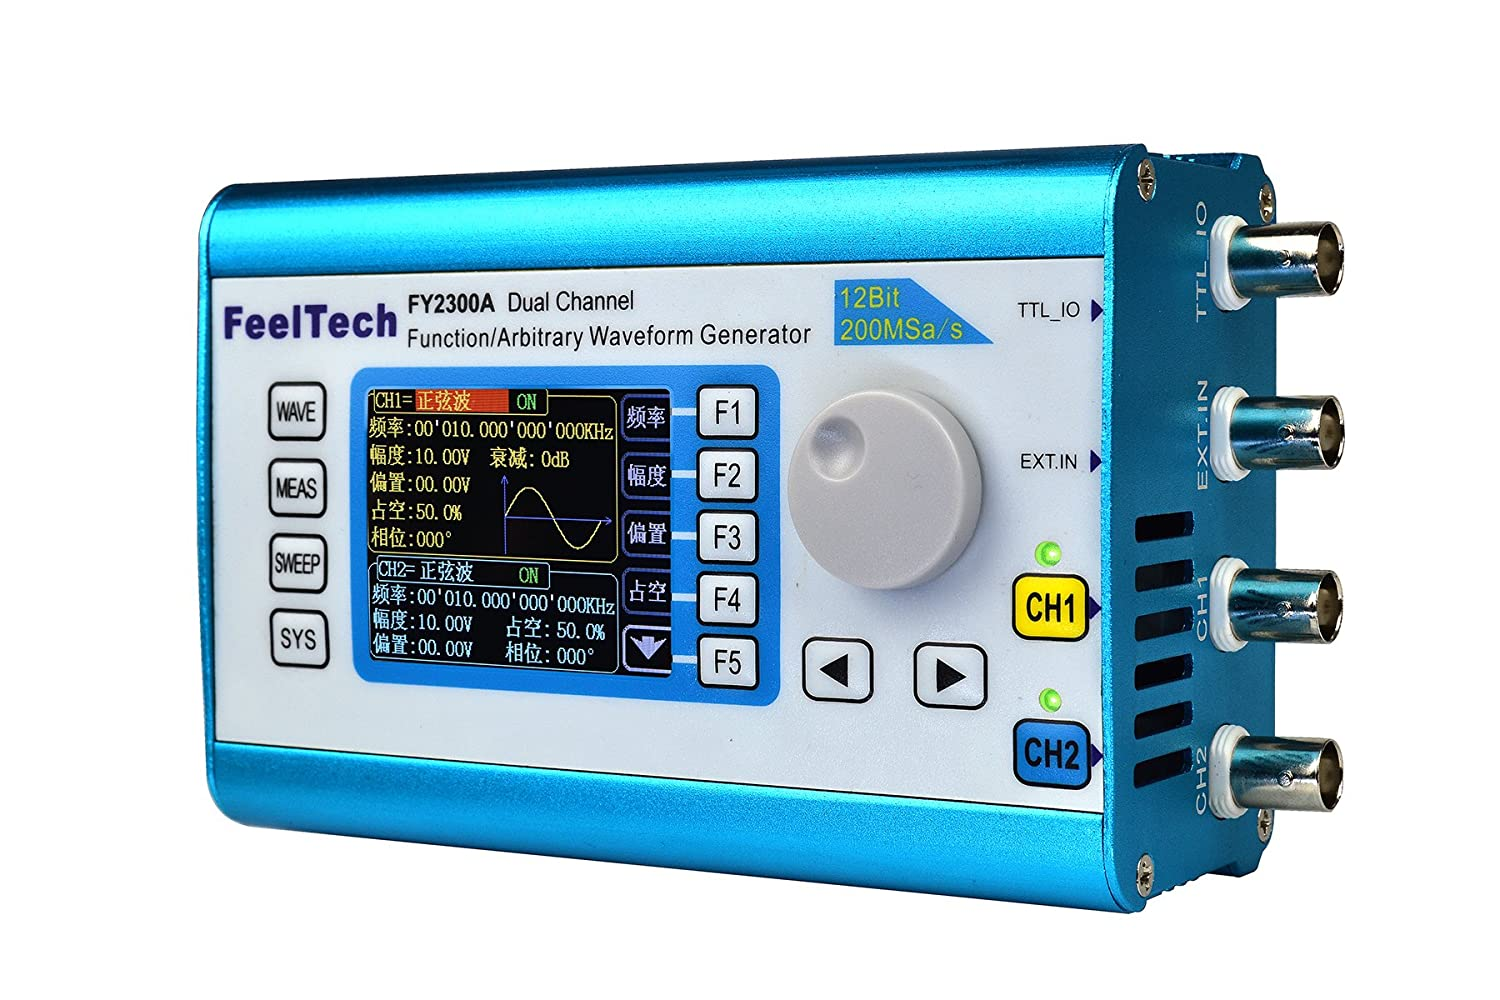 Kuman 20mhz High Precision Dds Arbitrary Waveform Generator With 24 Pulse Control Frequency By Digital Ic Tft Dual Channel 200msa S100mhz Meter Signal Fy2300